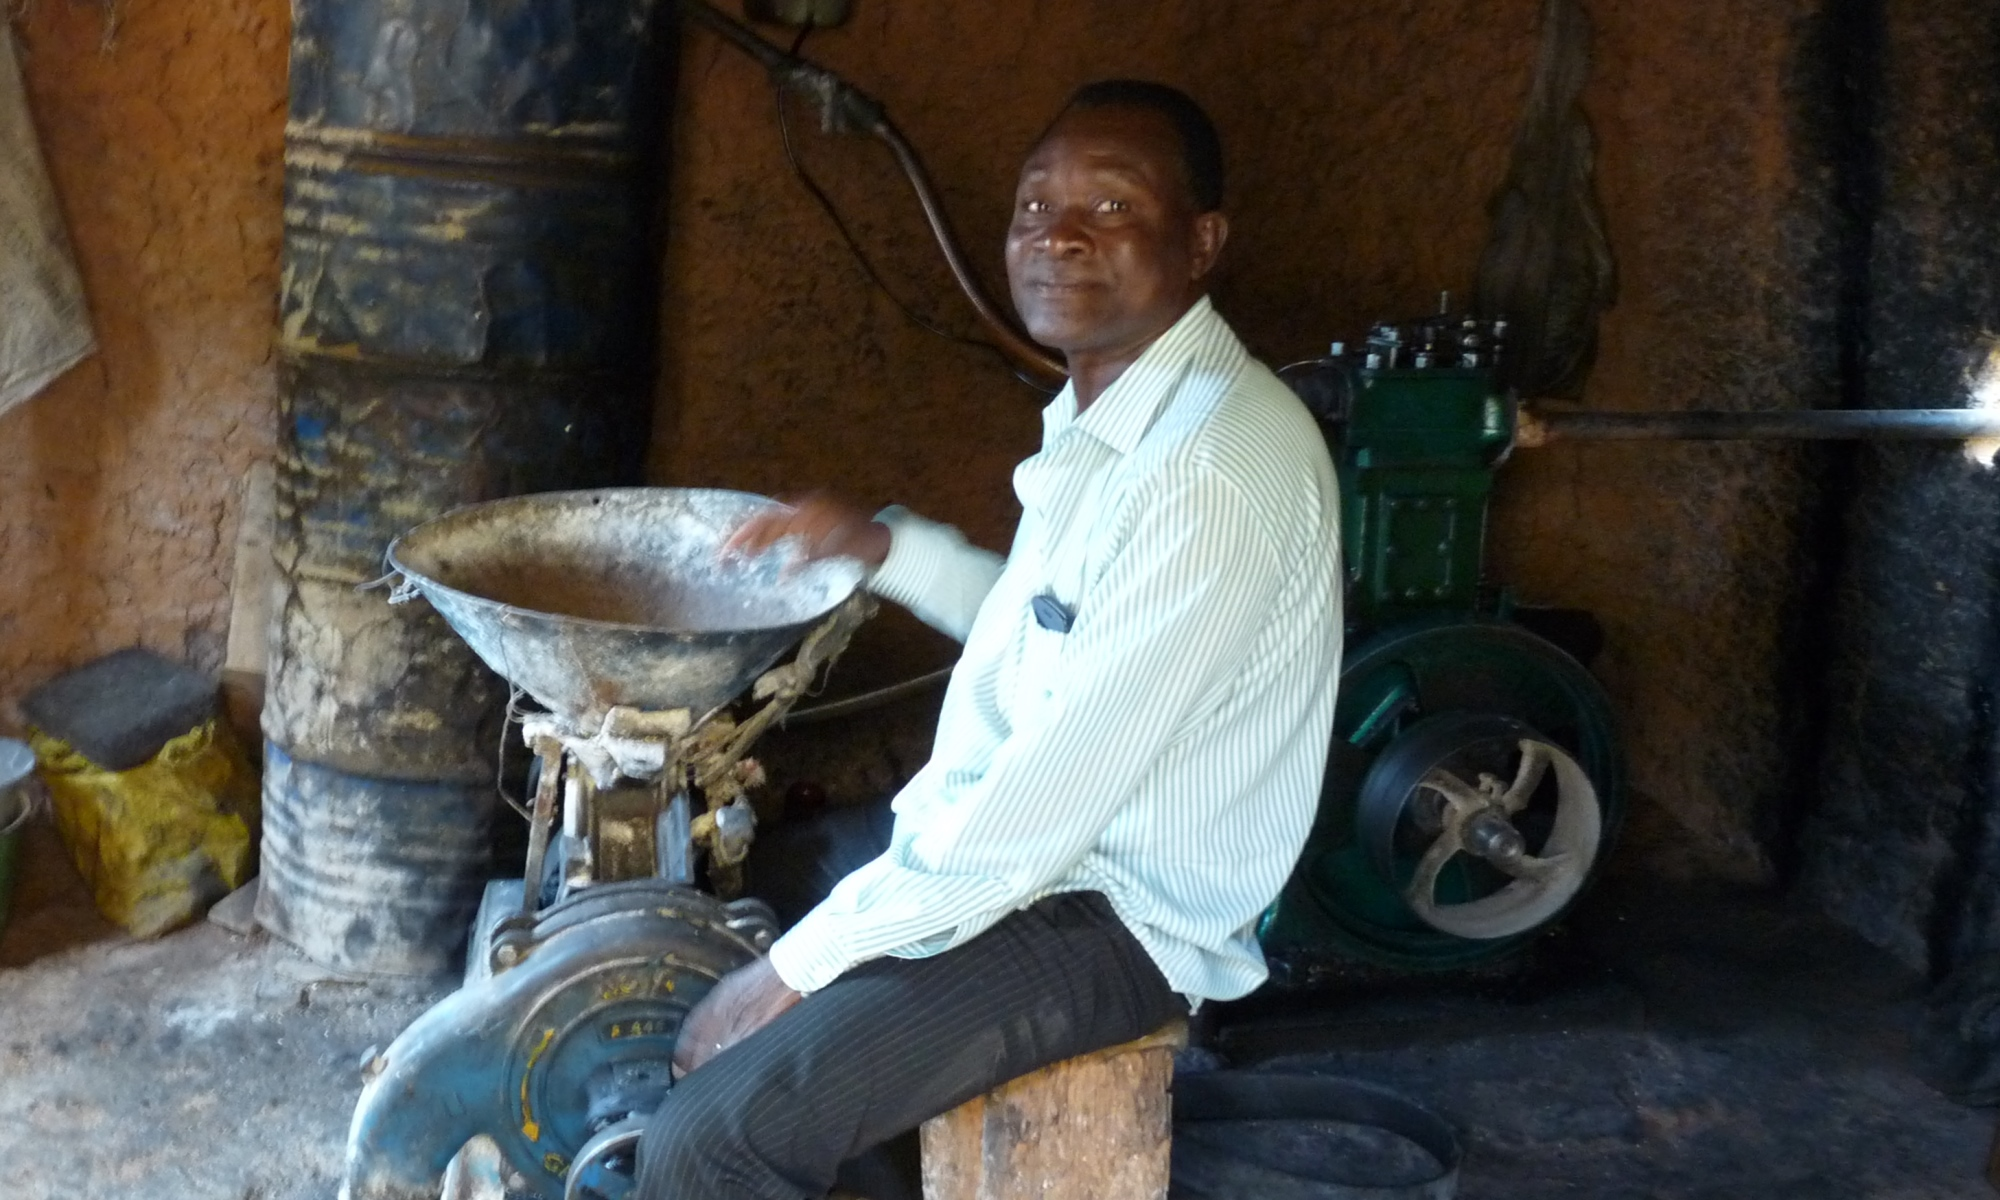 Farmer milling to diversify his income